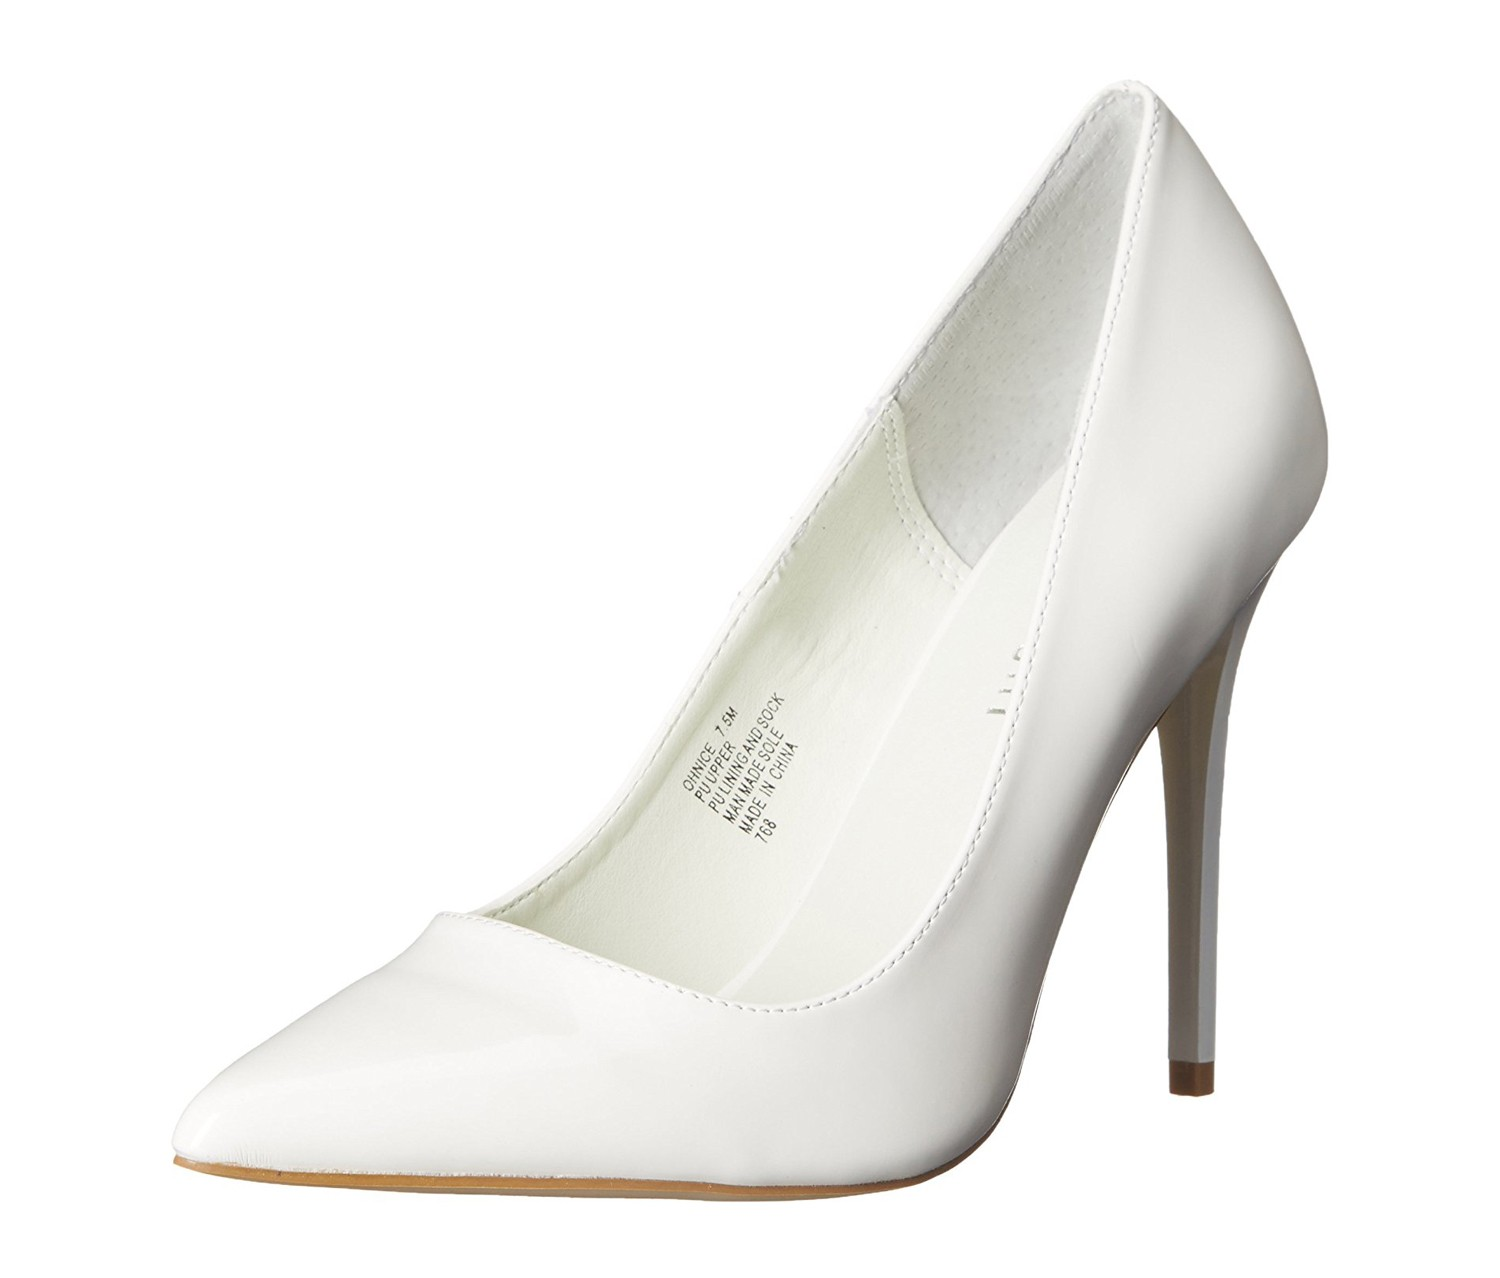 4b21a055b89 Shop Madden Girl Madden Girl Ohnice Pump, White for Women Shoes in ...